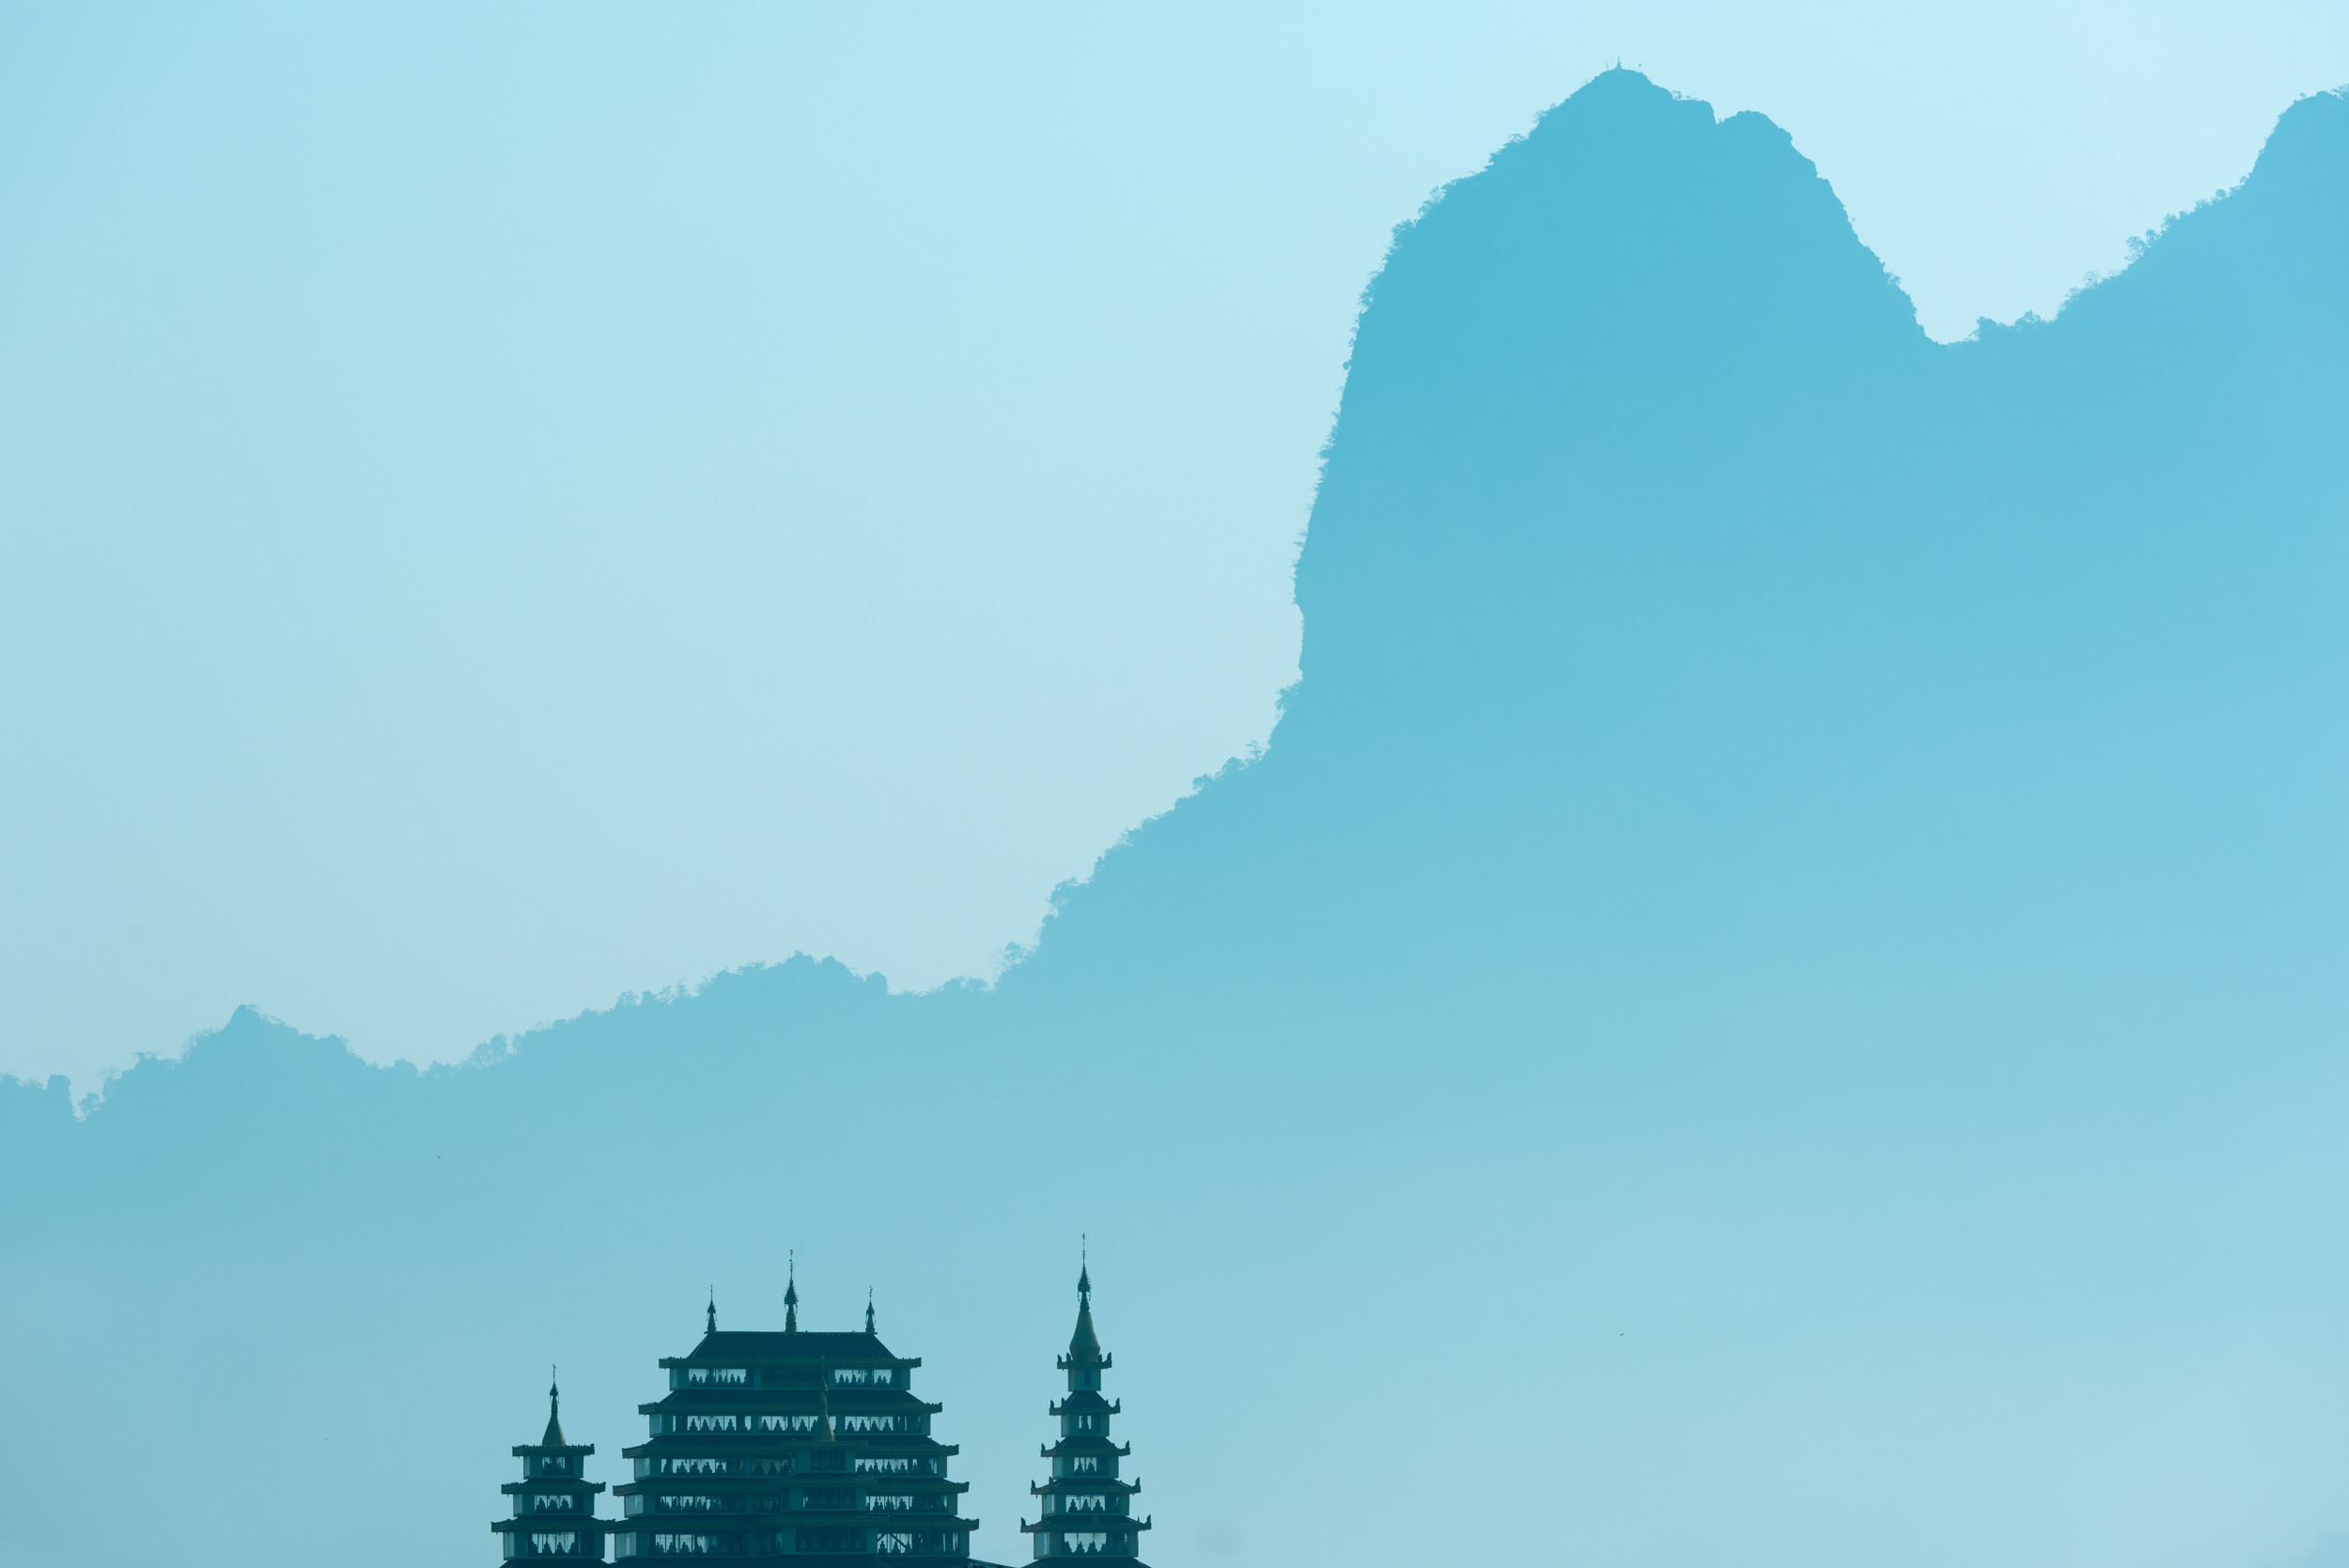 temple-skyline-mountains-blue-dawn-hpa-an-kayin-myanmar-nobody